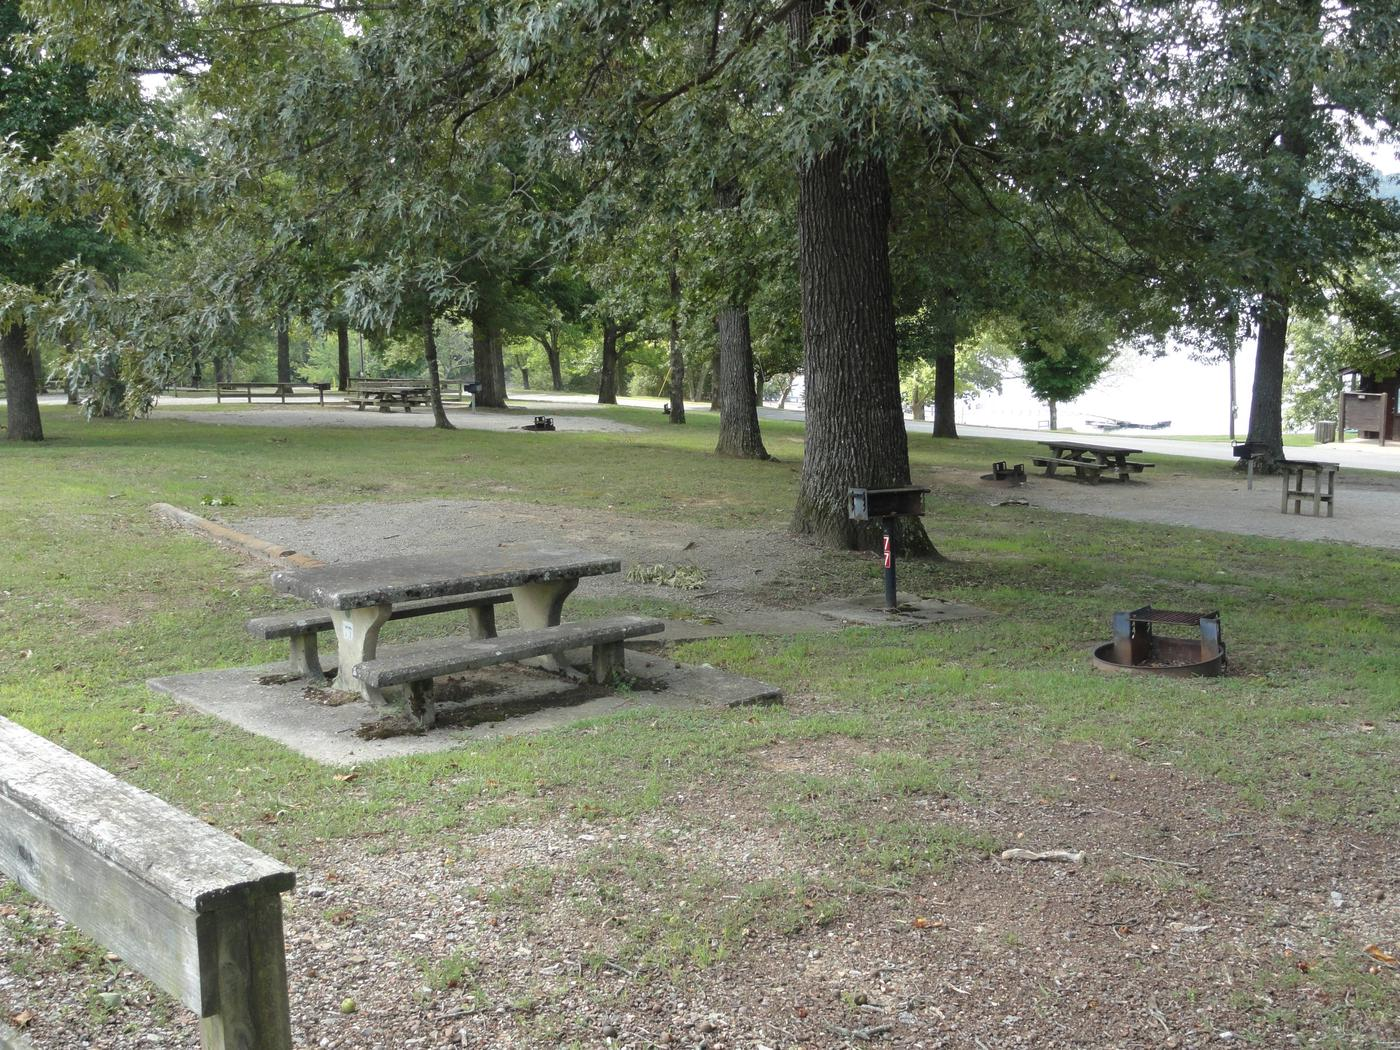 WILLOW GROVE CAMPGROUND SITE #77